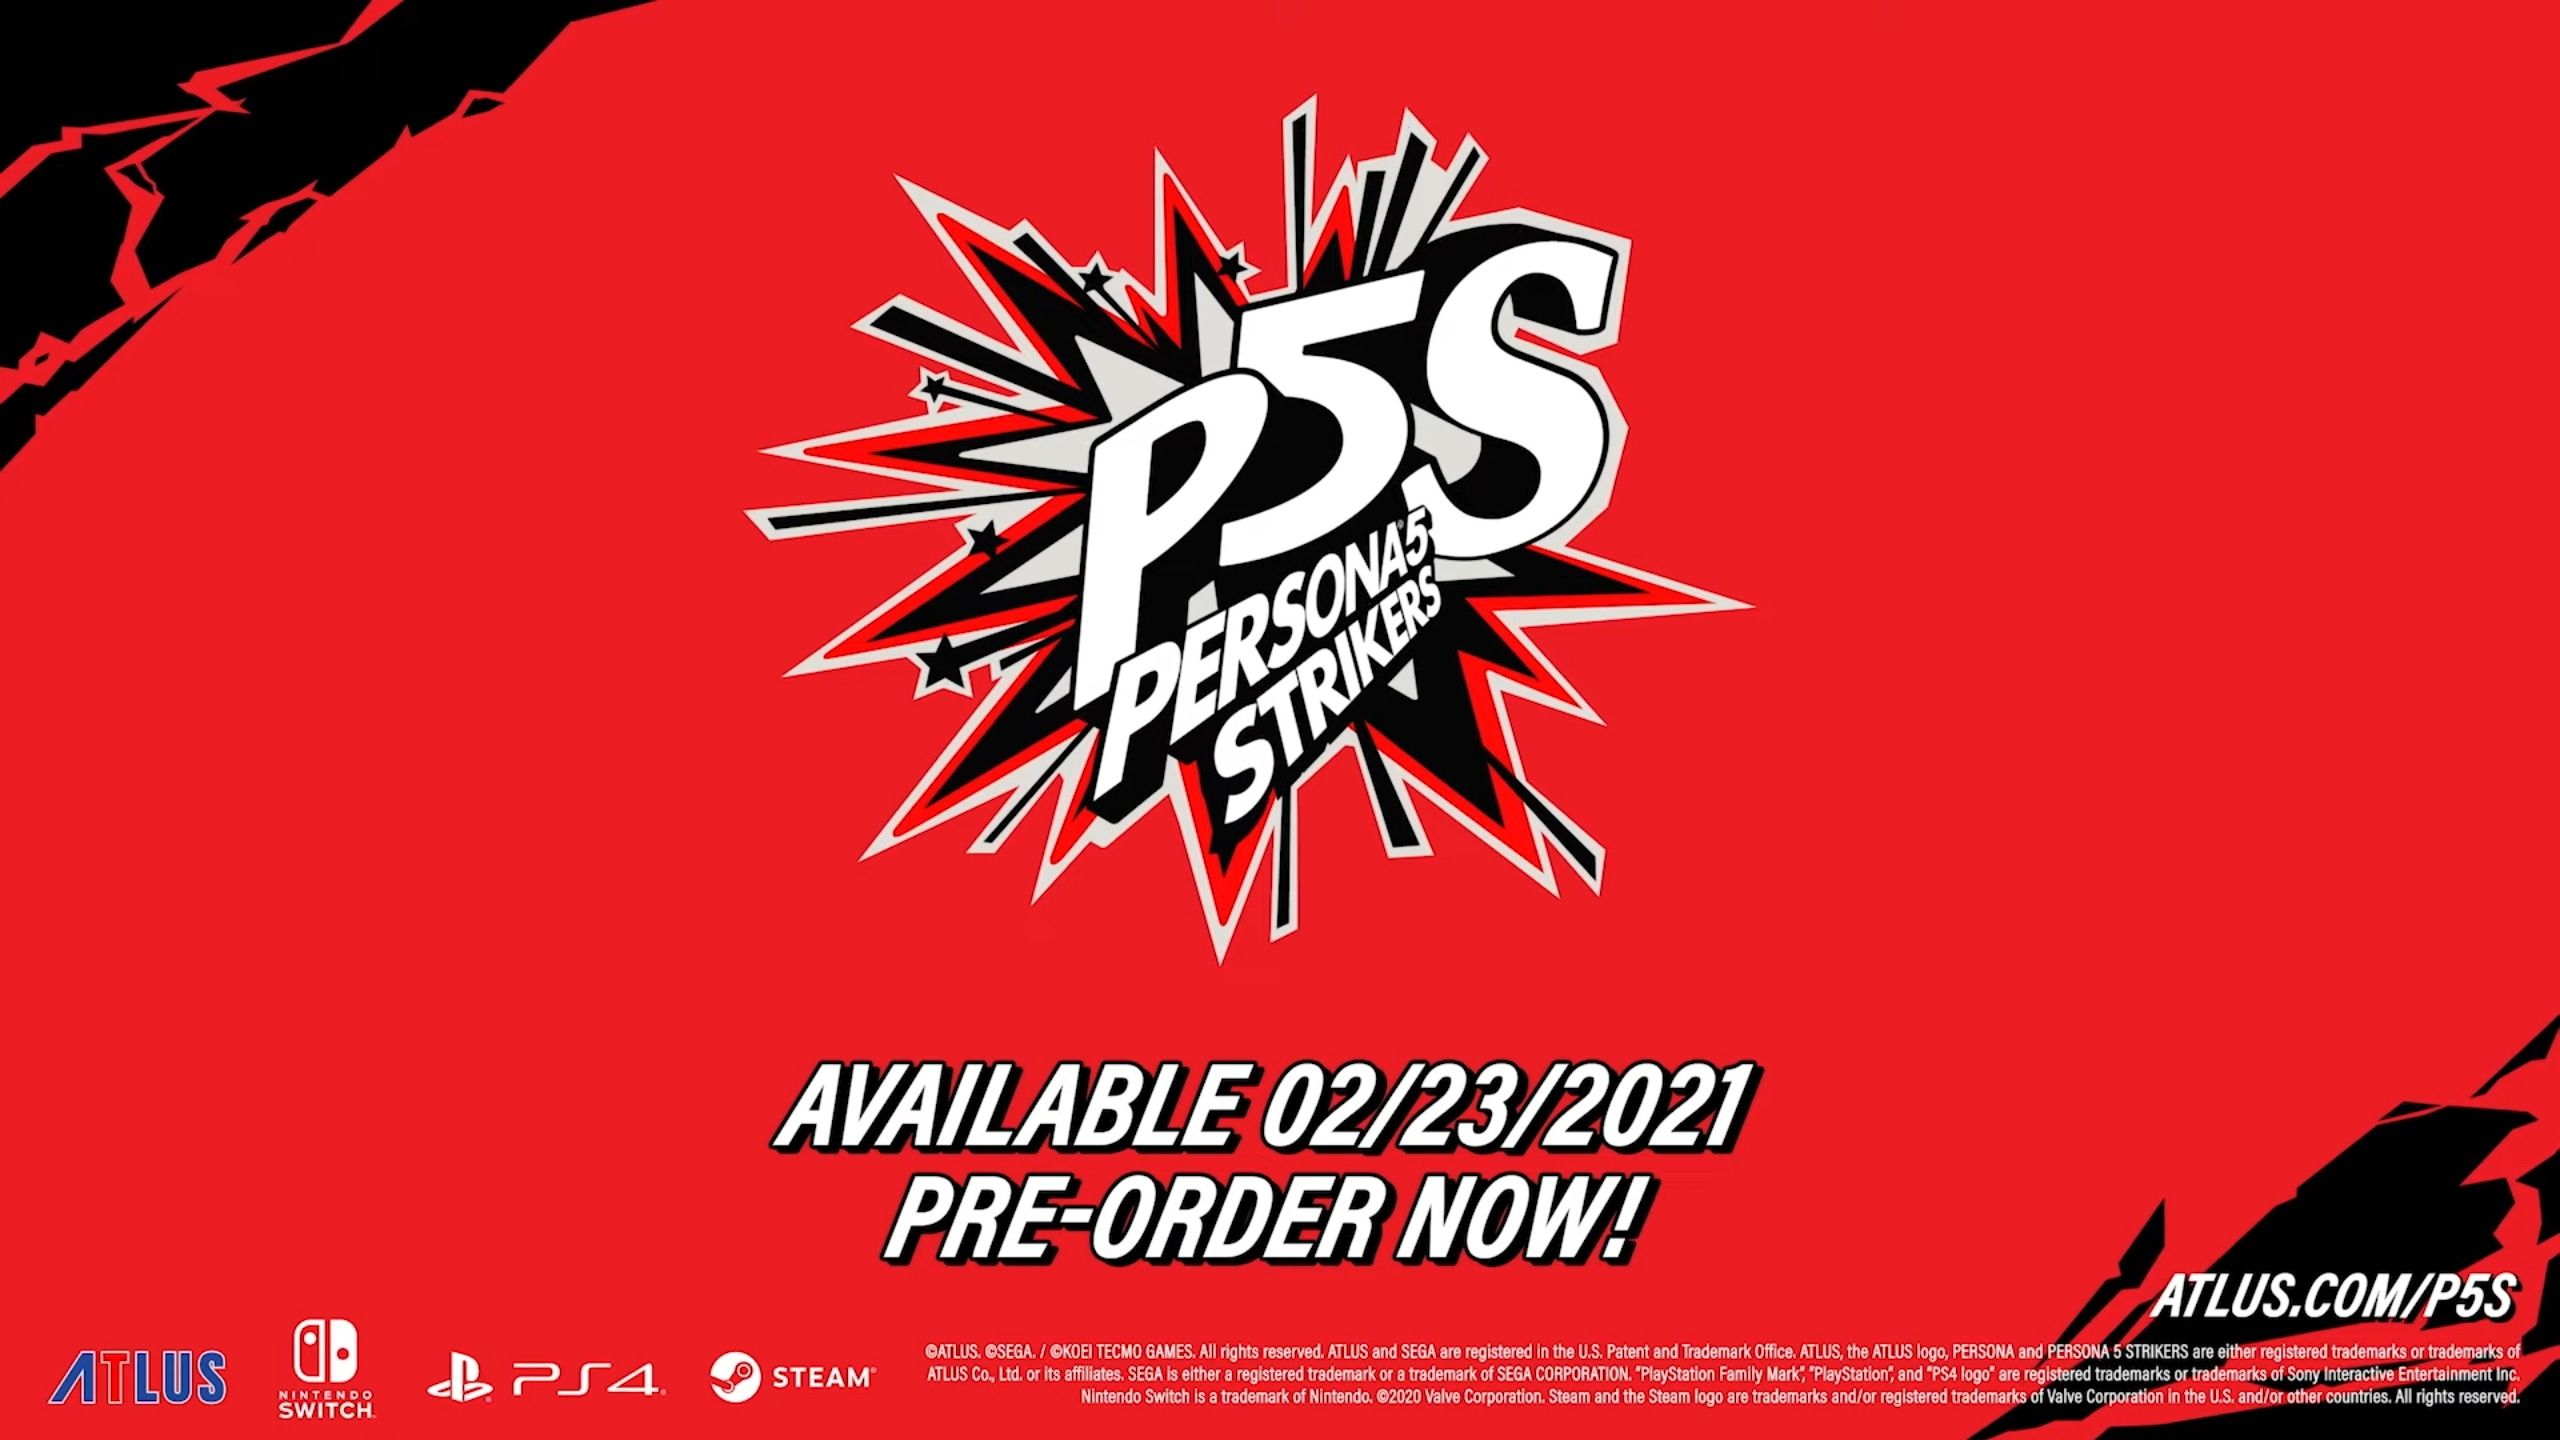 Persona 5 Strikers for PS4, Change, & PC Getting Western Launch in February 2021 [UPDATED] 1